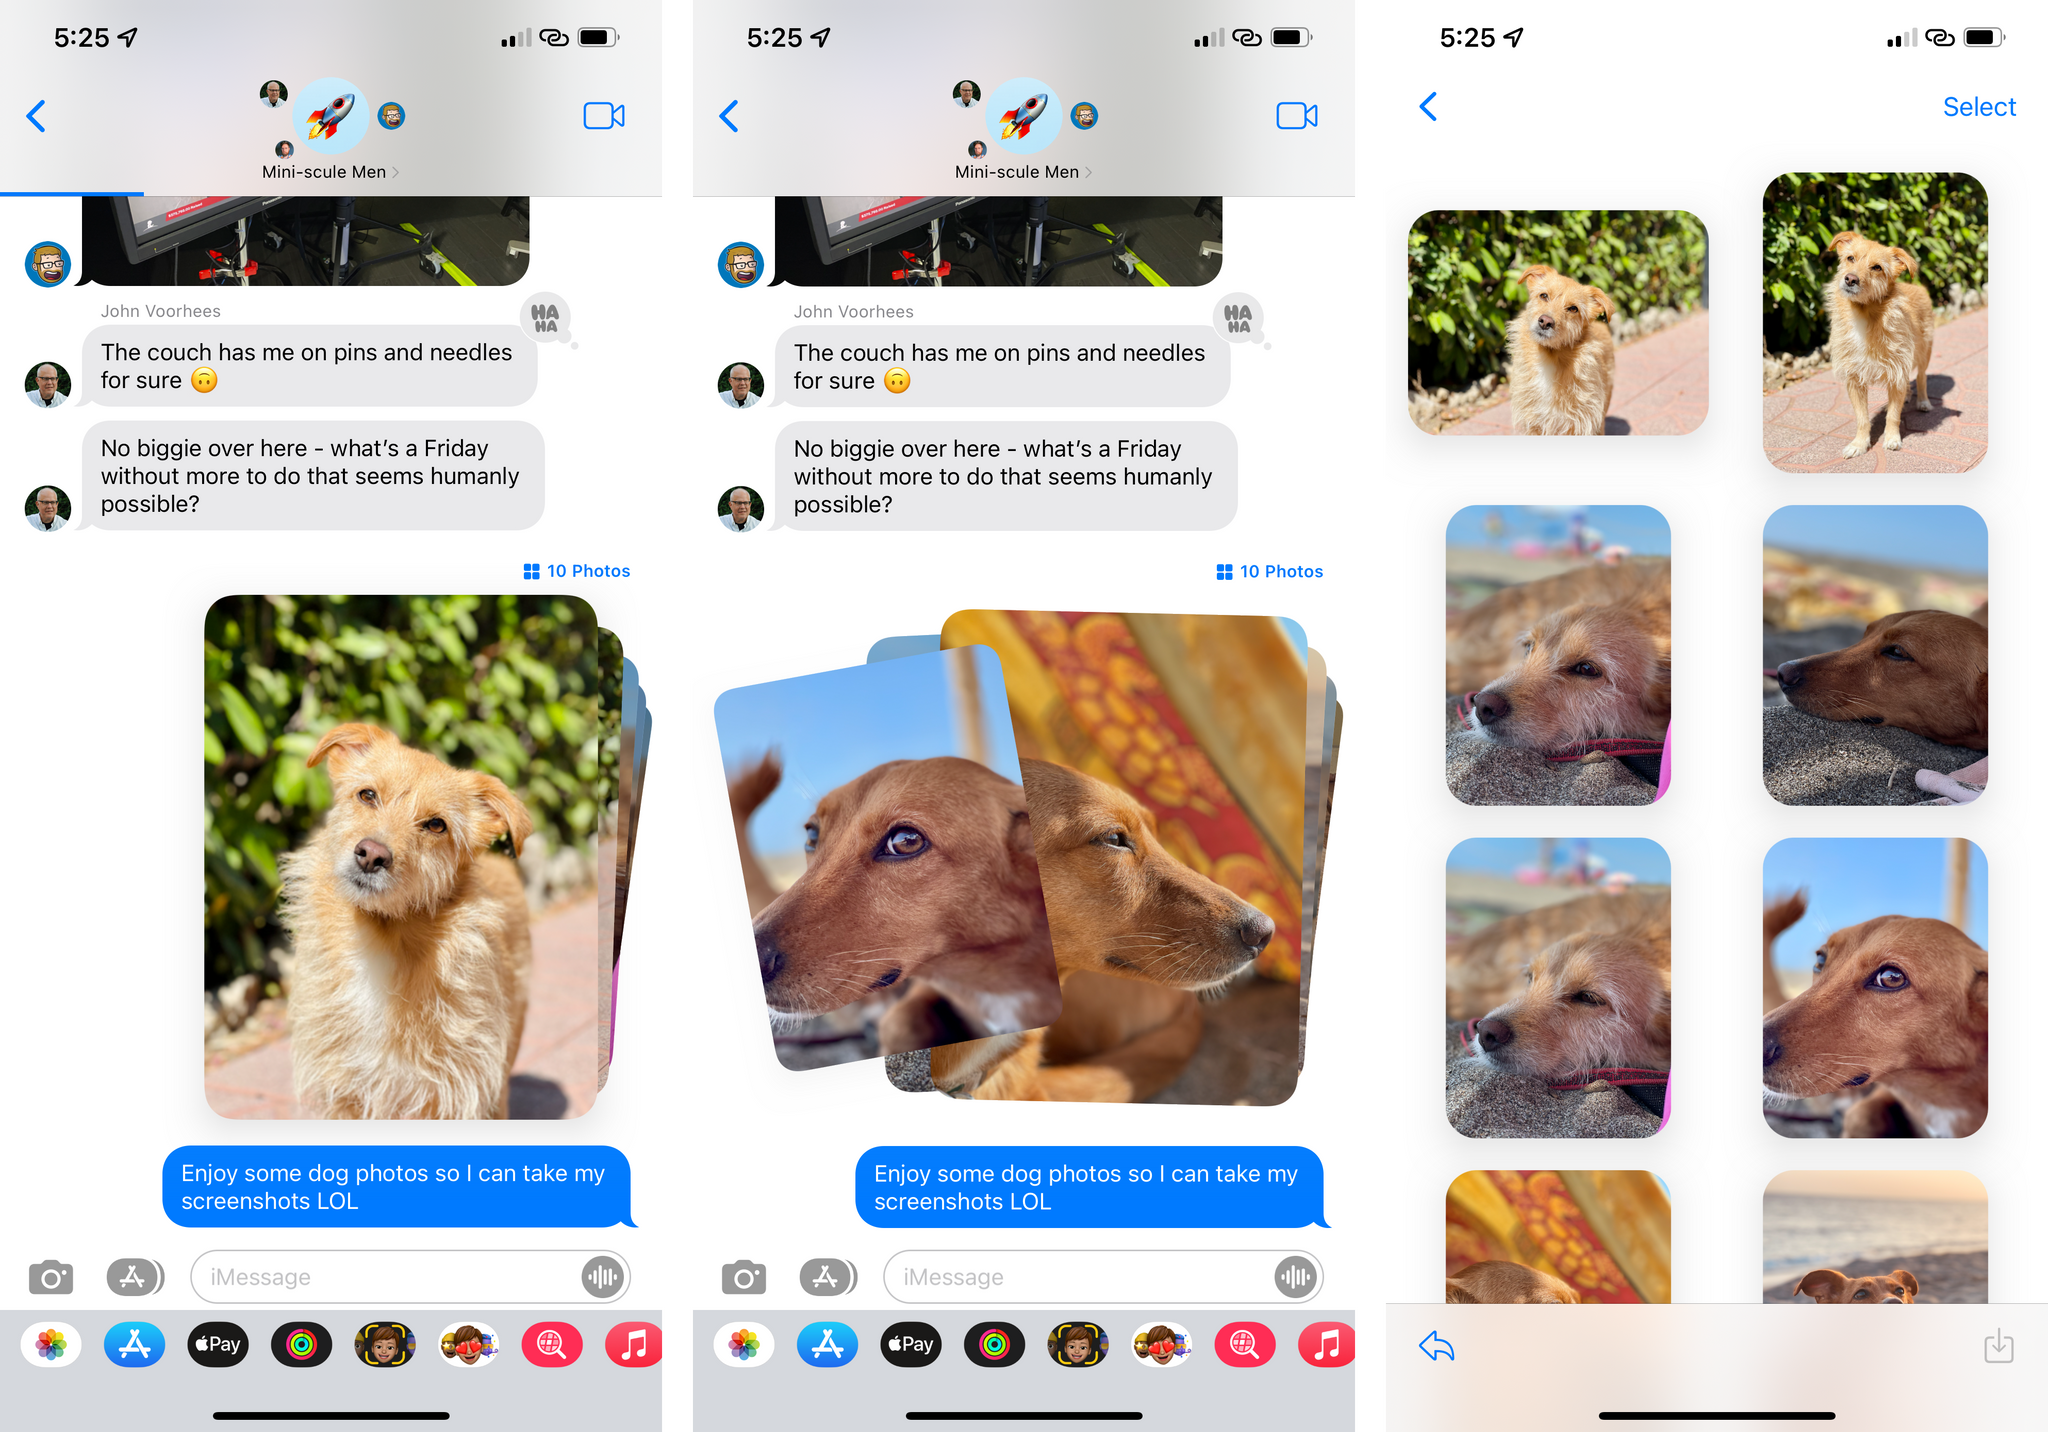 New photo stacks in Messages.